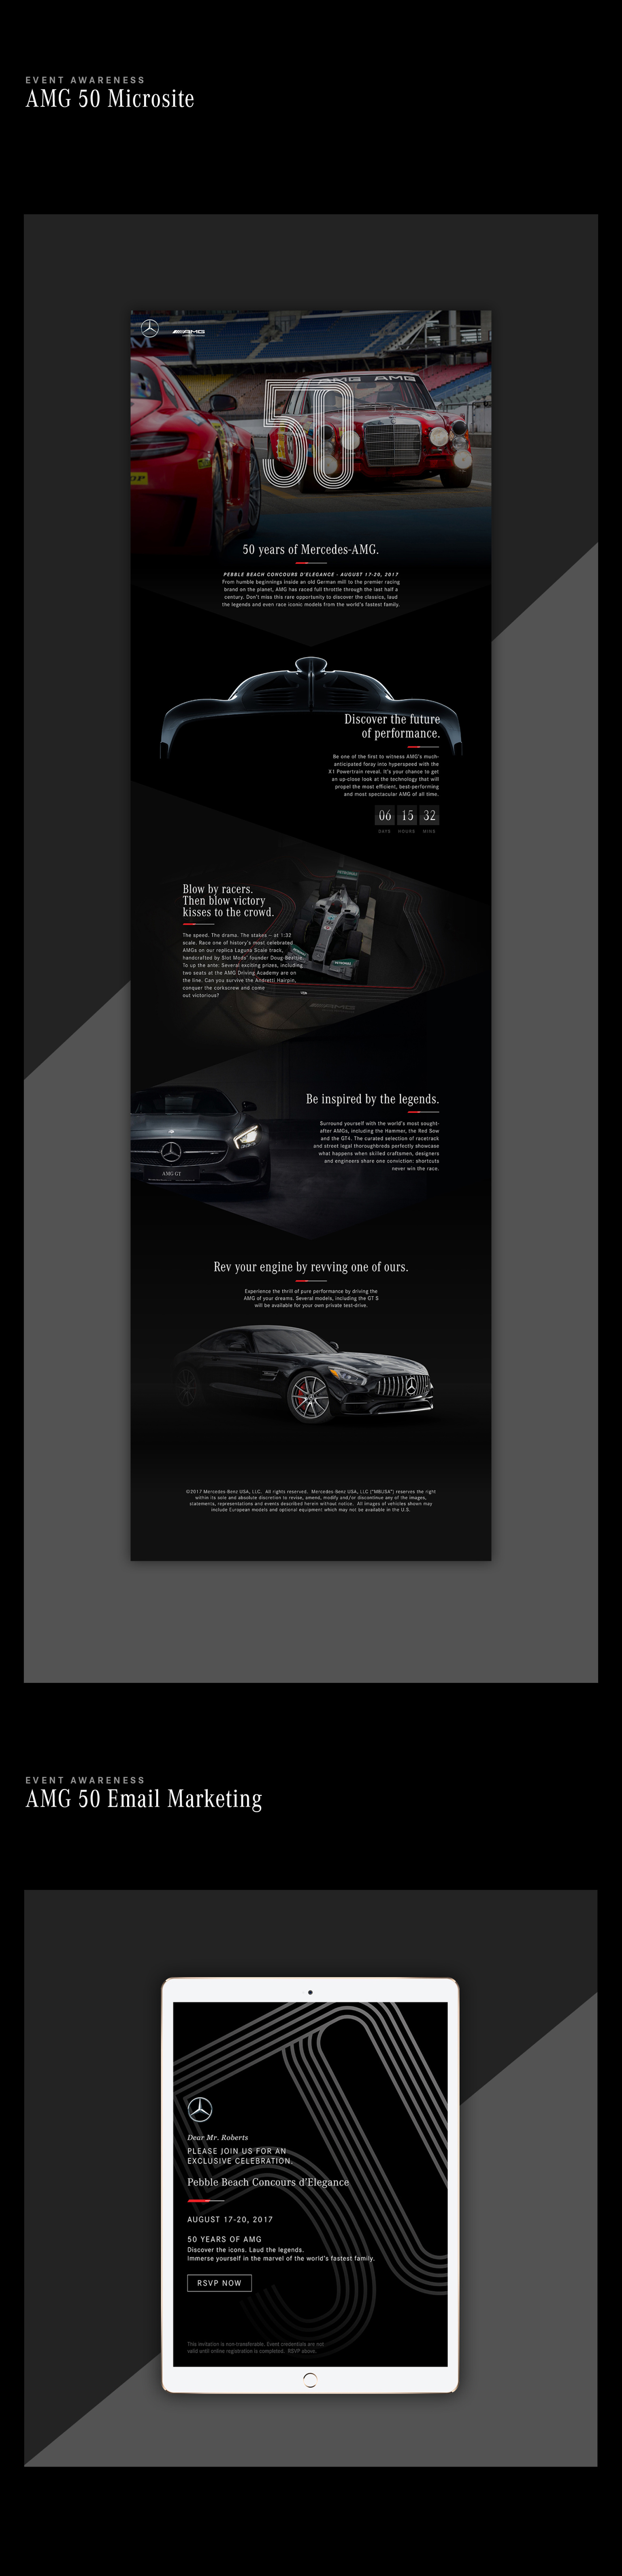 Mercedes-Benz AMG 50th Anniversary